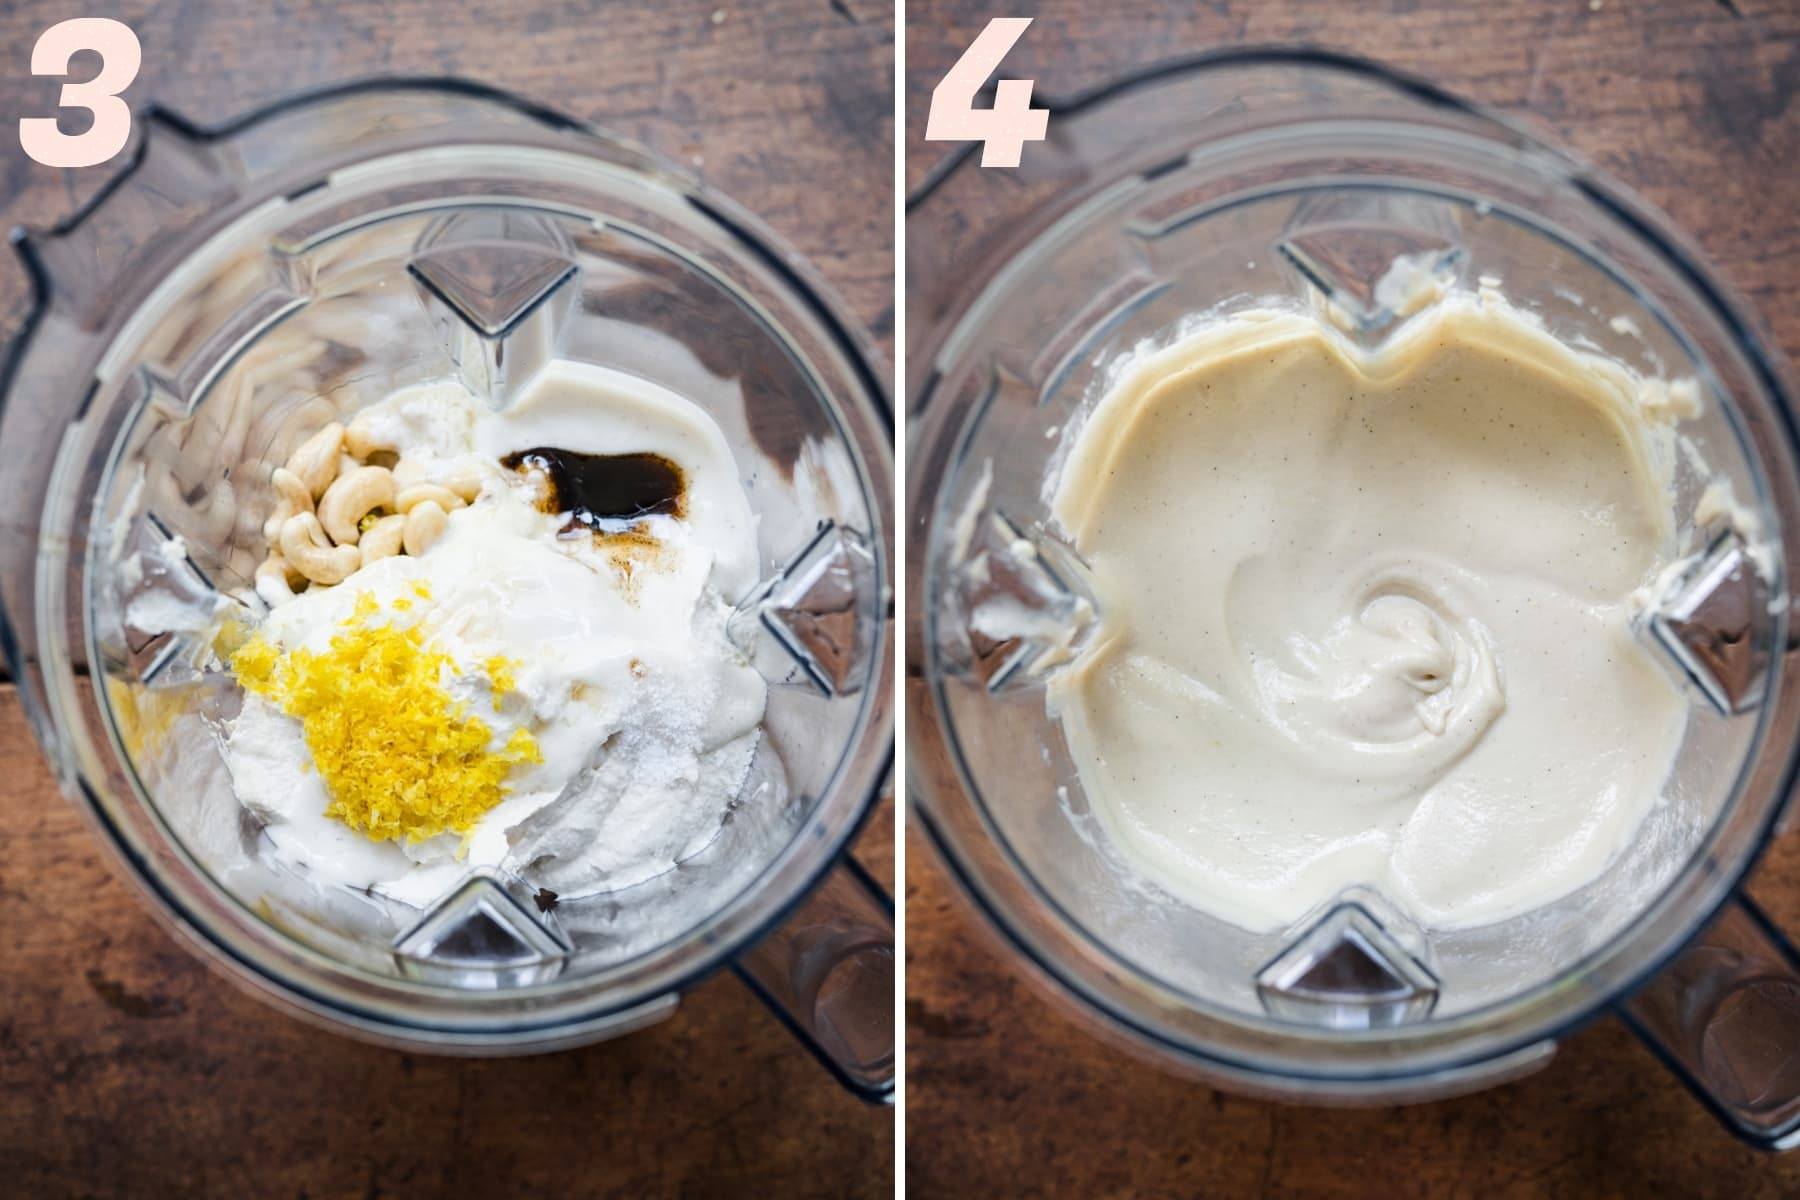 before and after blending ingredients for vegan cheesecake filling in blender.